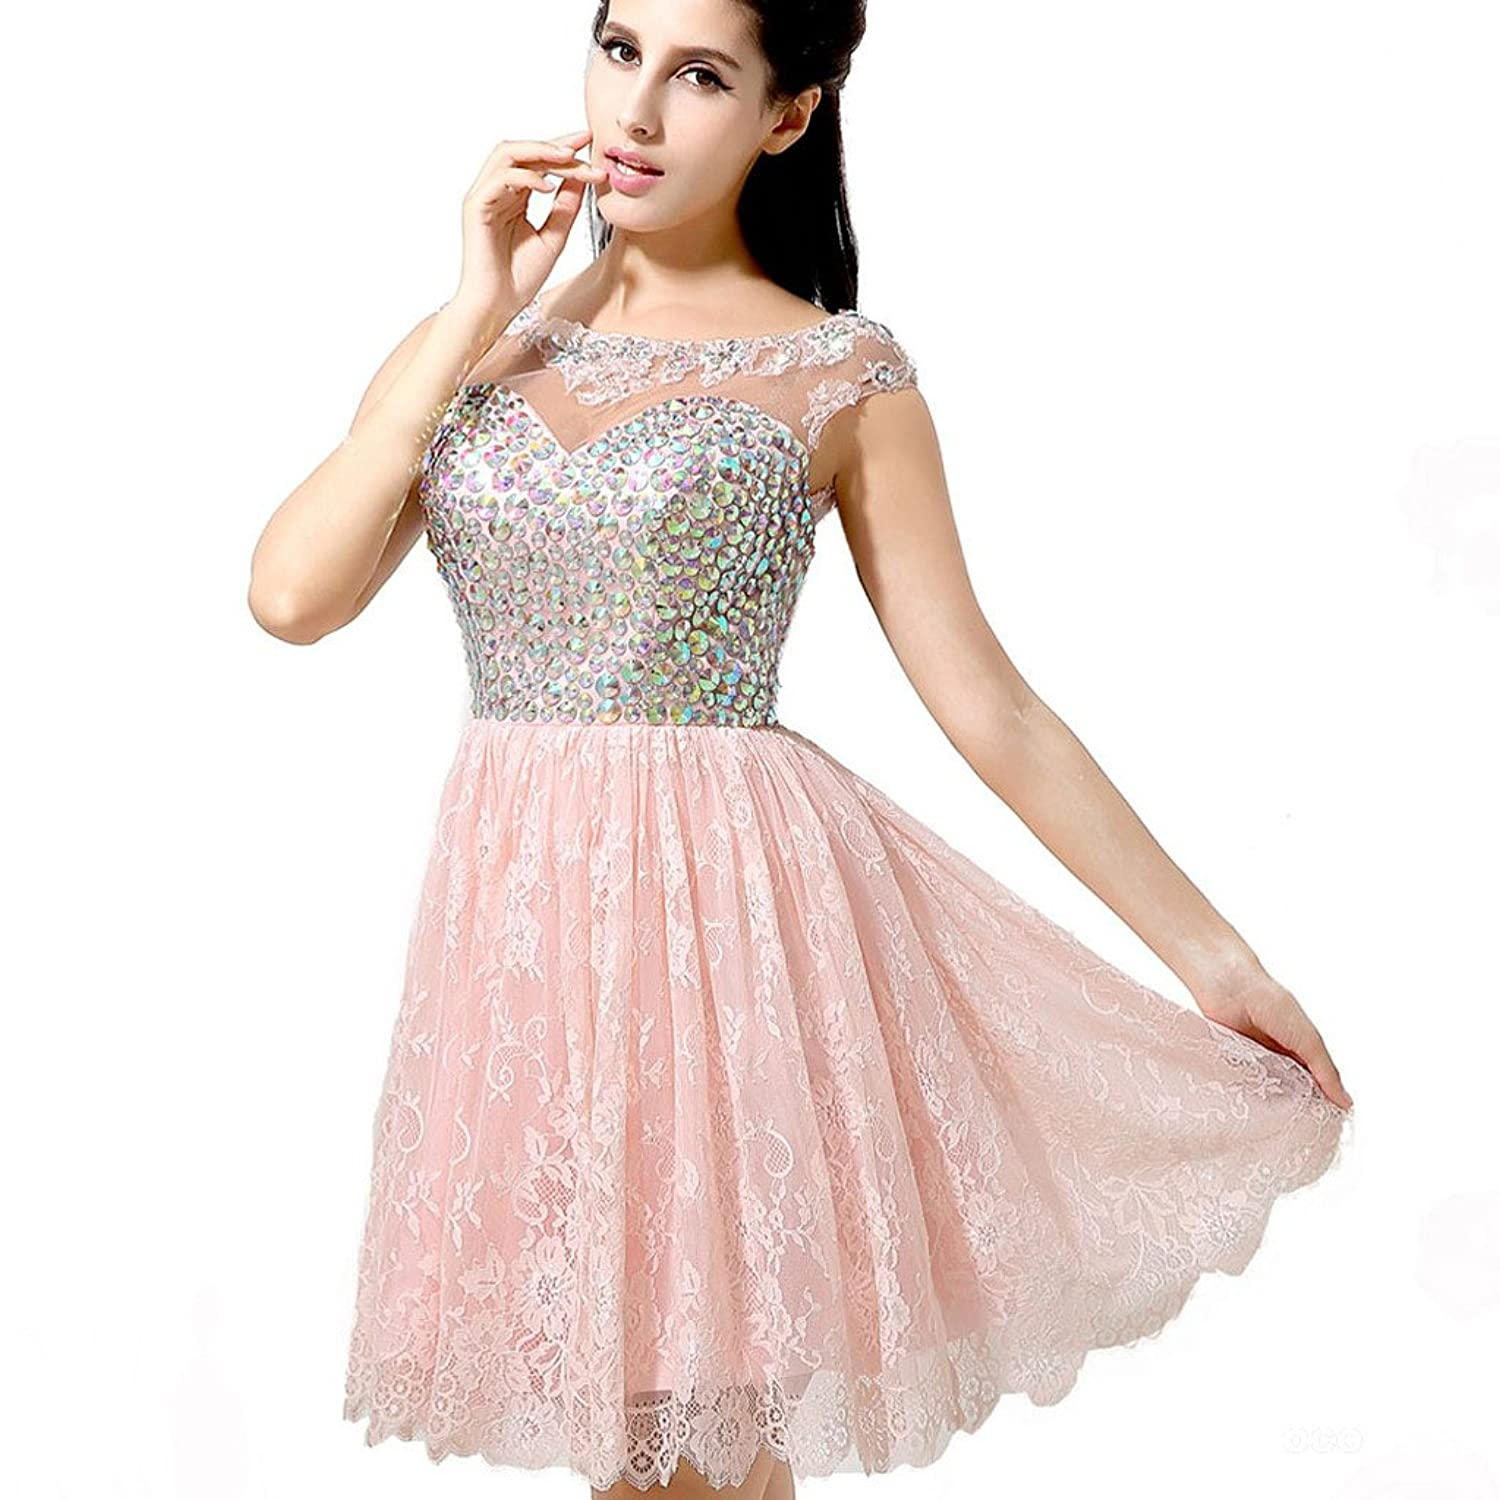 Clearbridal Women's Lace Prom Dresses Pink AJ037